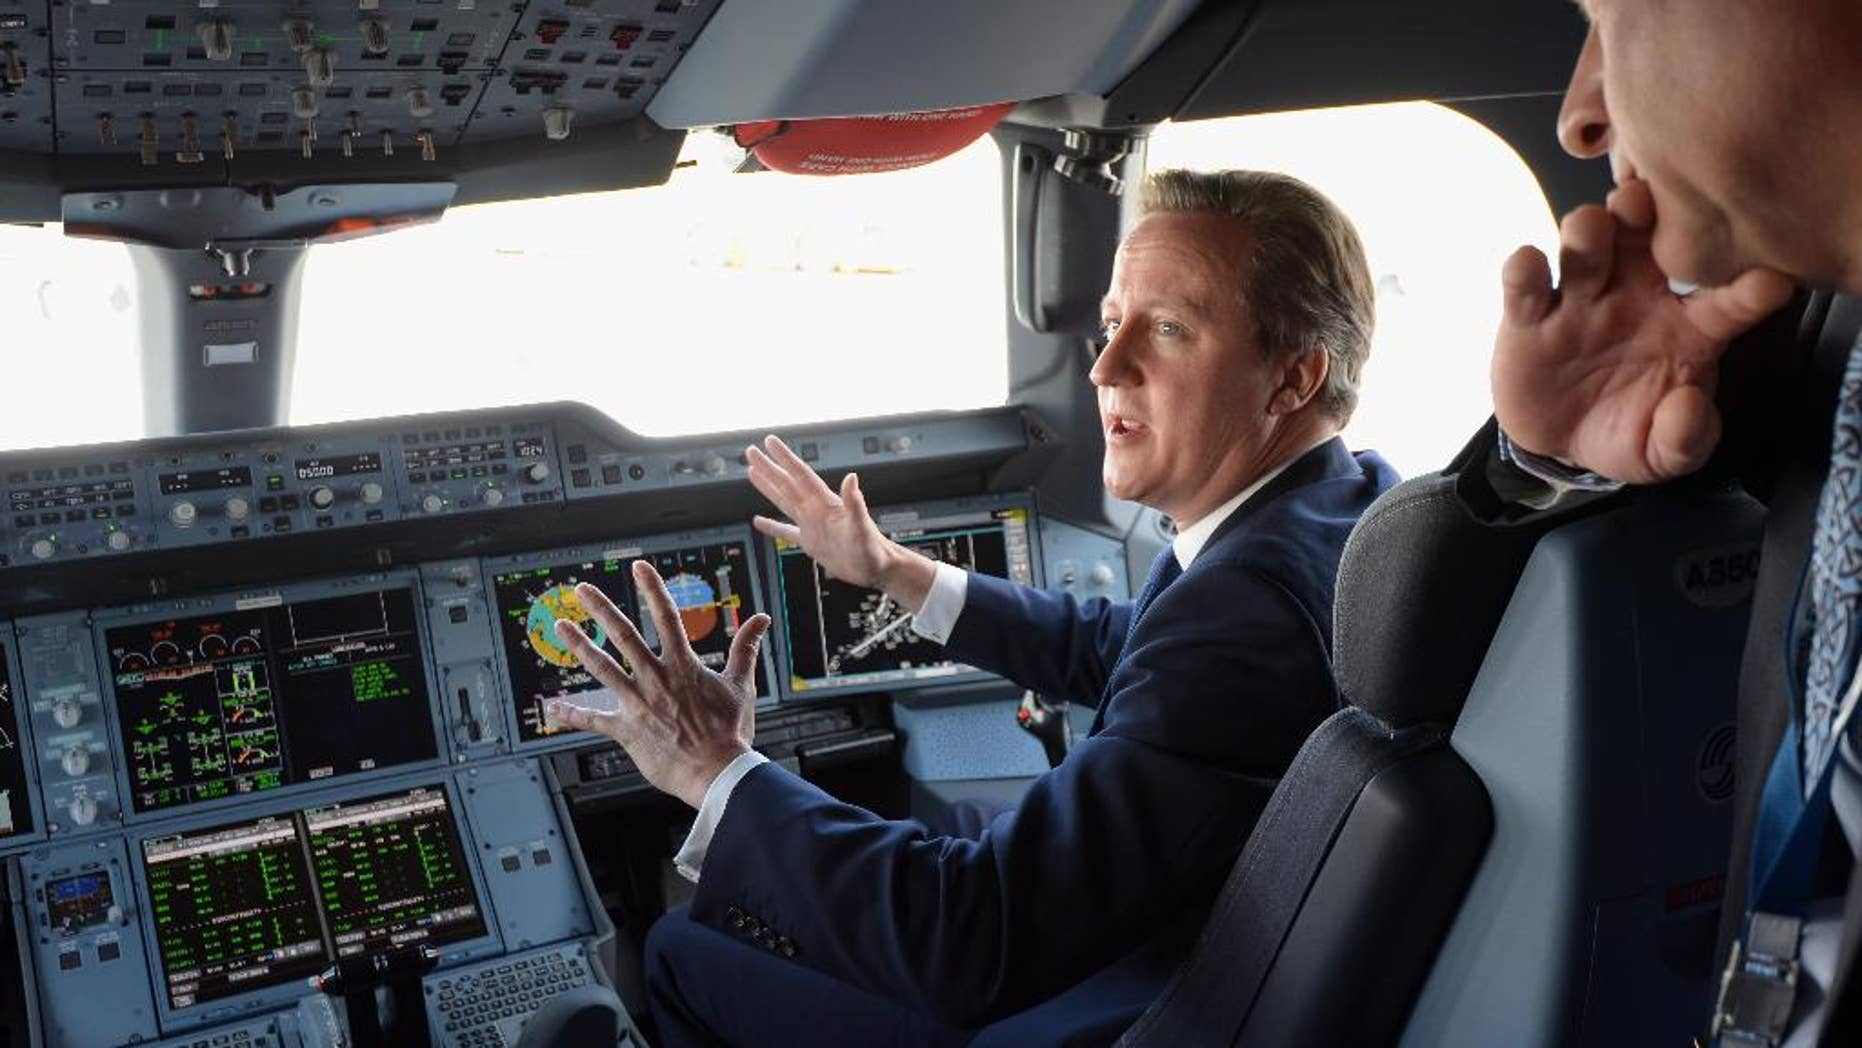 Britain's Prime Minister David Cameron, background, sits in the co-pilots seat, in the cockpit as he is shown around an Airbus A350, during a visit to the 2014 Farnborough Airshow in Hampshire, England, Monday July 14, 2014. (AP Photo/Andrew Matthews, Pool)